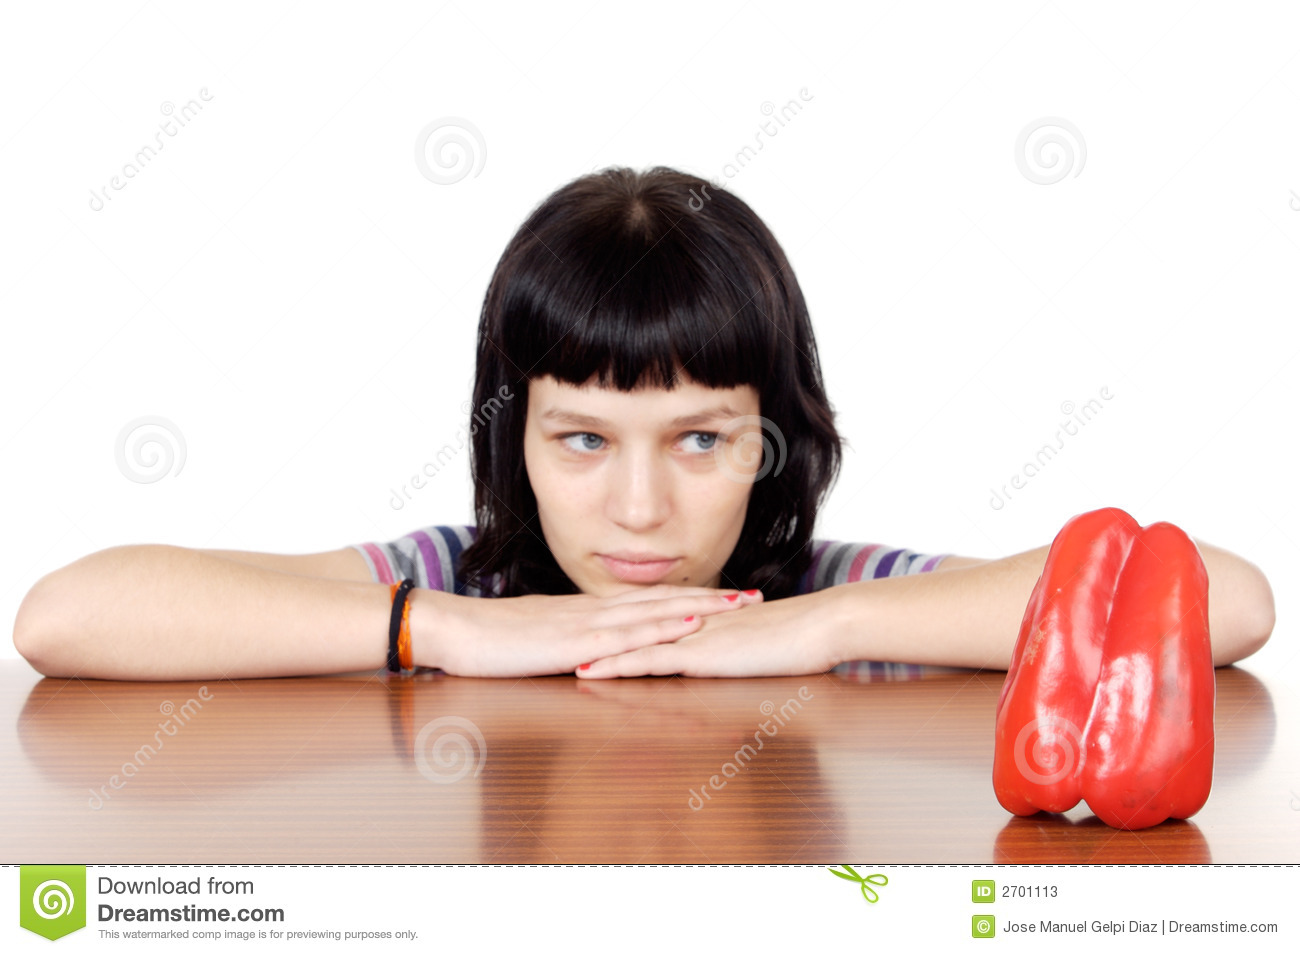 Girl watching a red pepper